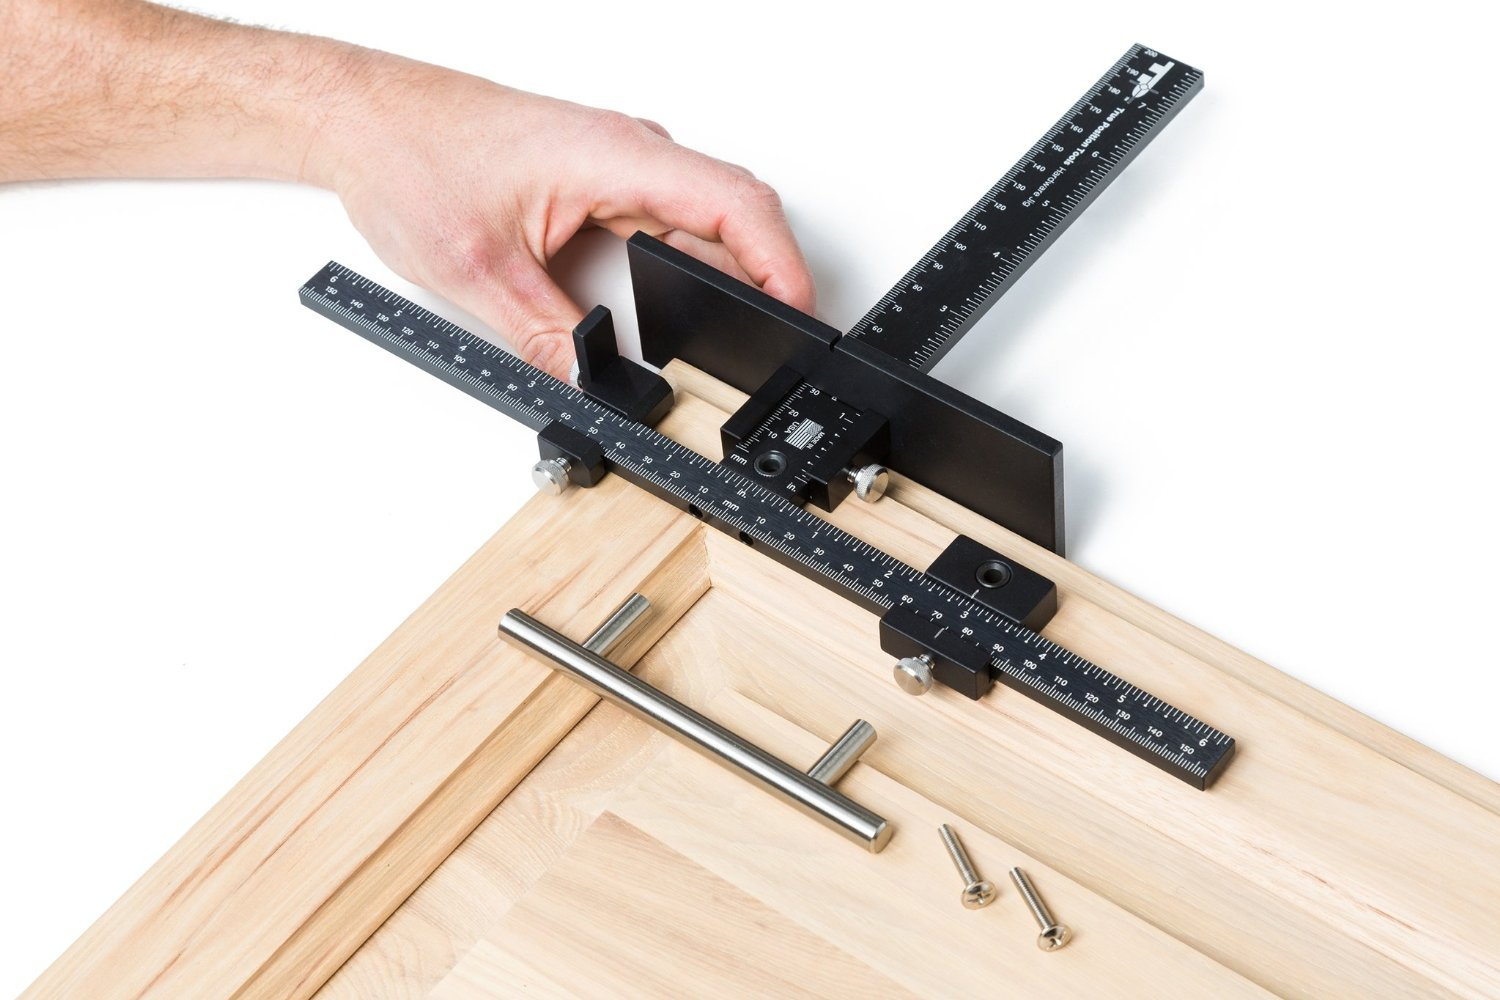 True Position Tools TP-1934 Cabinet Hardware Jig